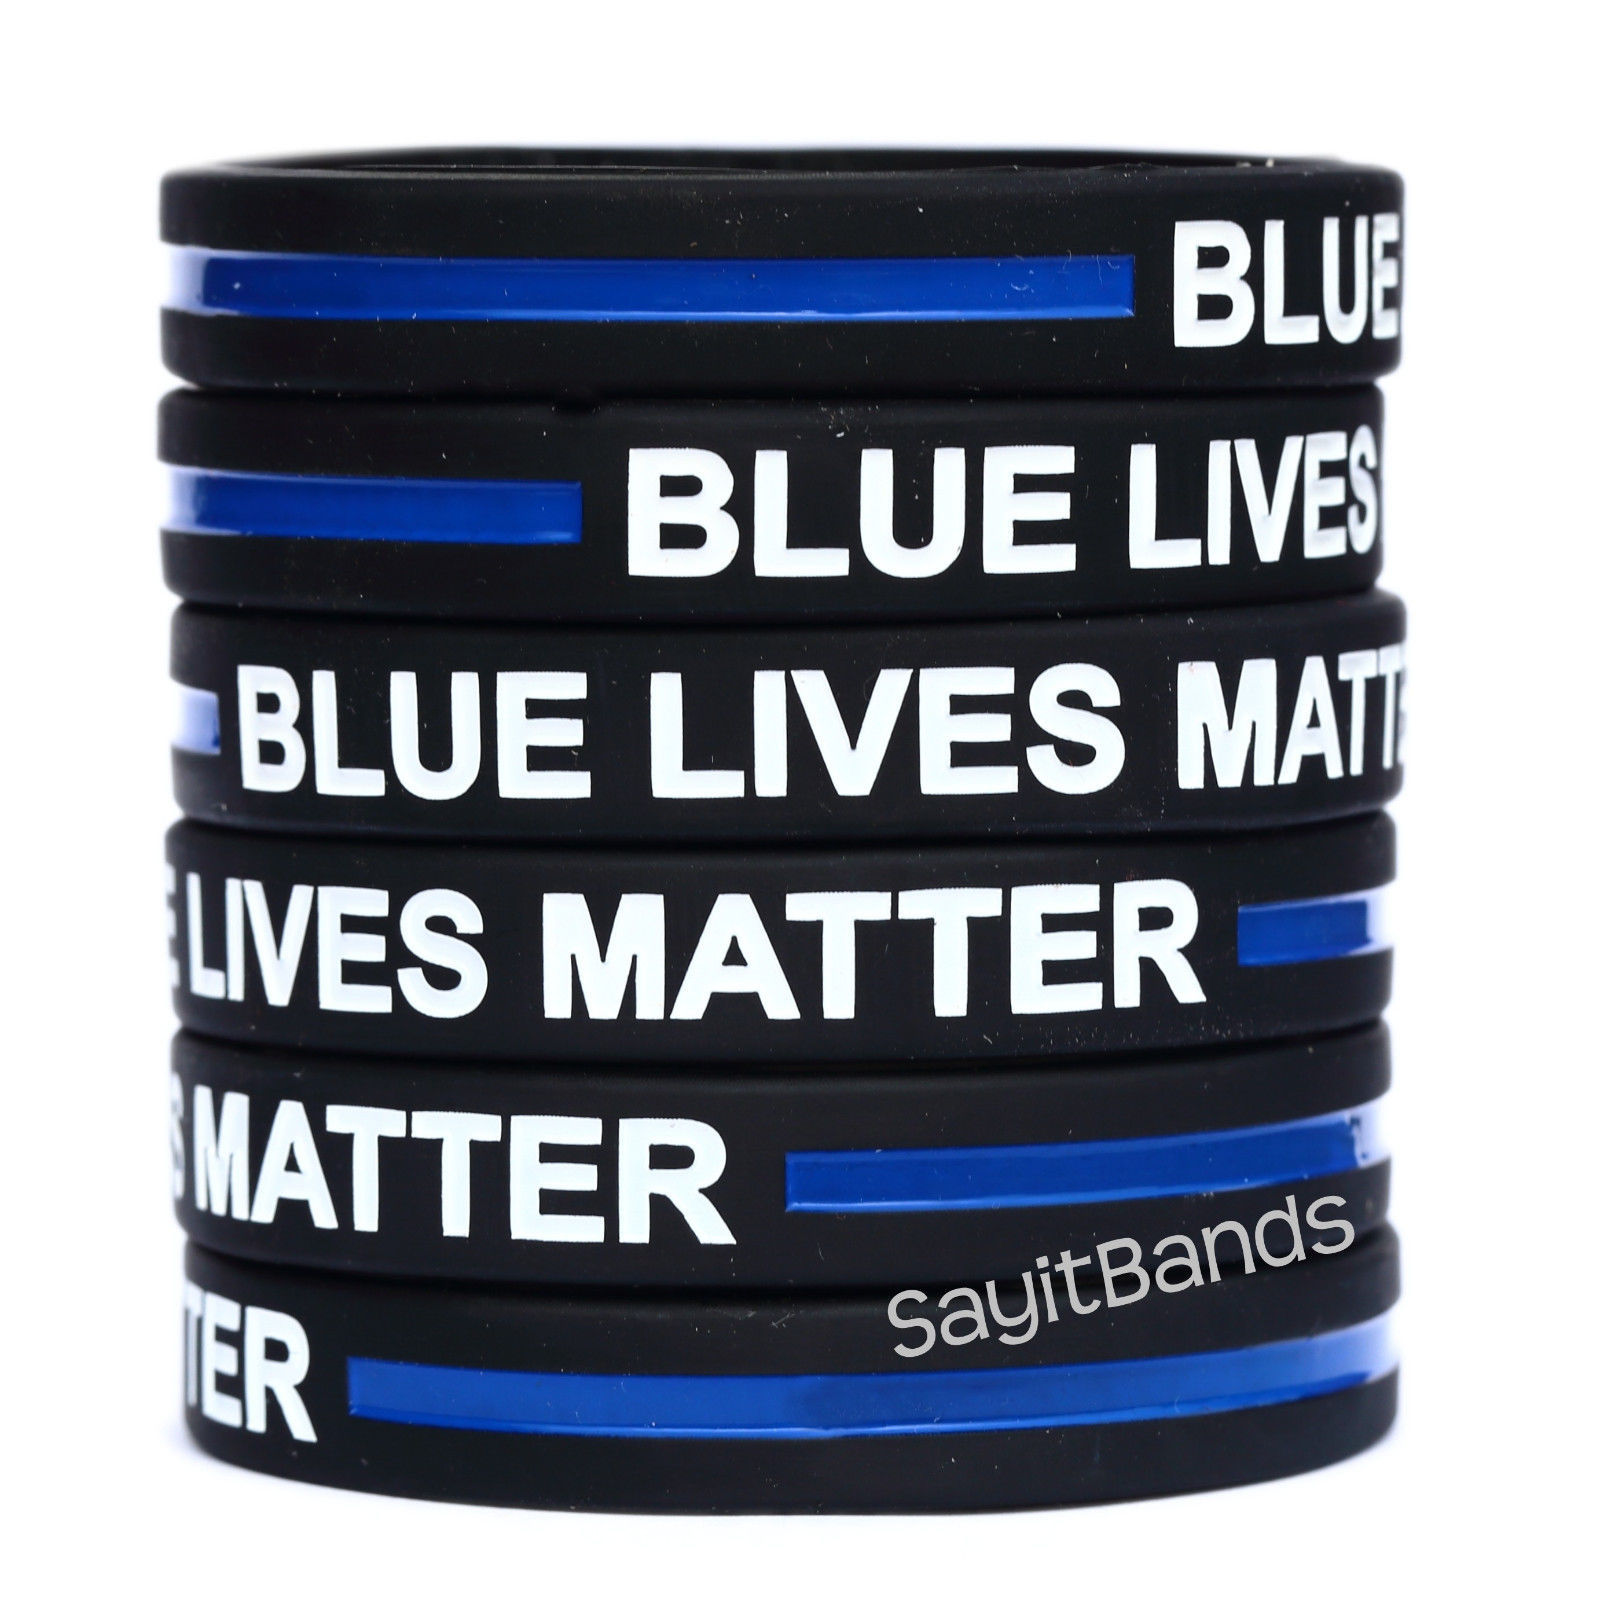 Primary image for One Hundred (100) BLUE LIVES MATTER Thin Blue Line Wristbands - Police Support